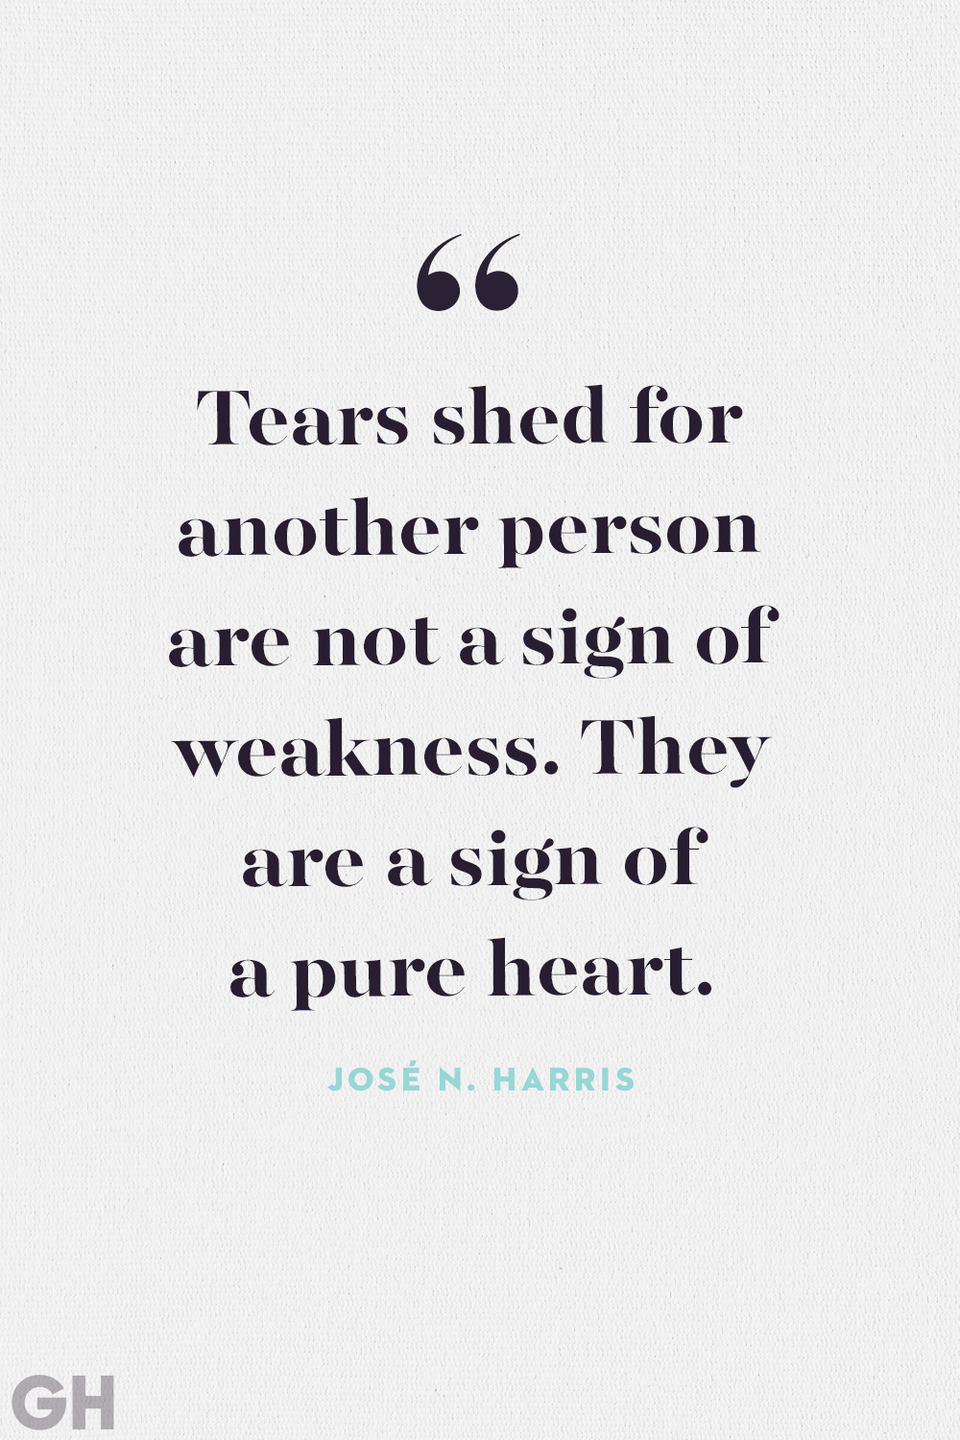 """<p>""""Tears shed for another person are not a sign of weakness. They are a sign of a pure heart.""""</p>"""